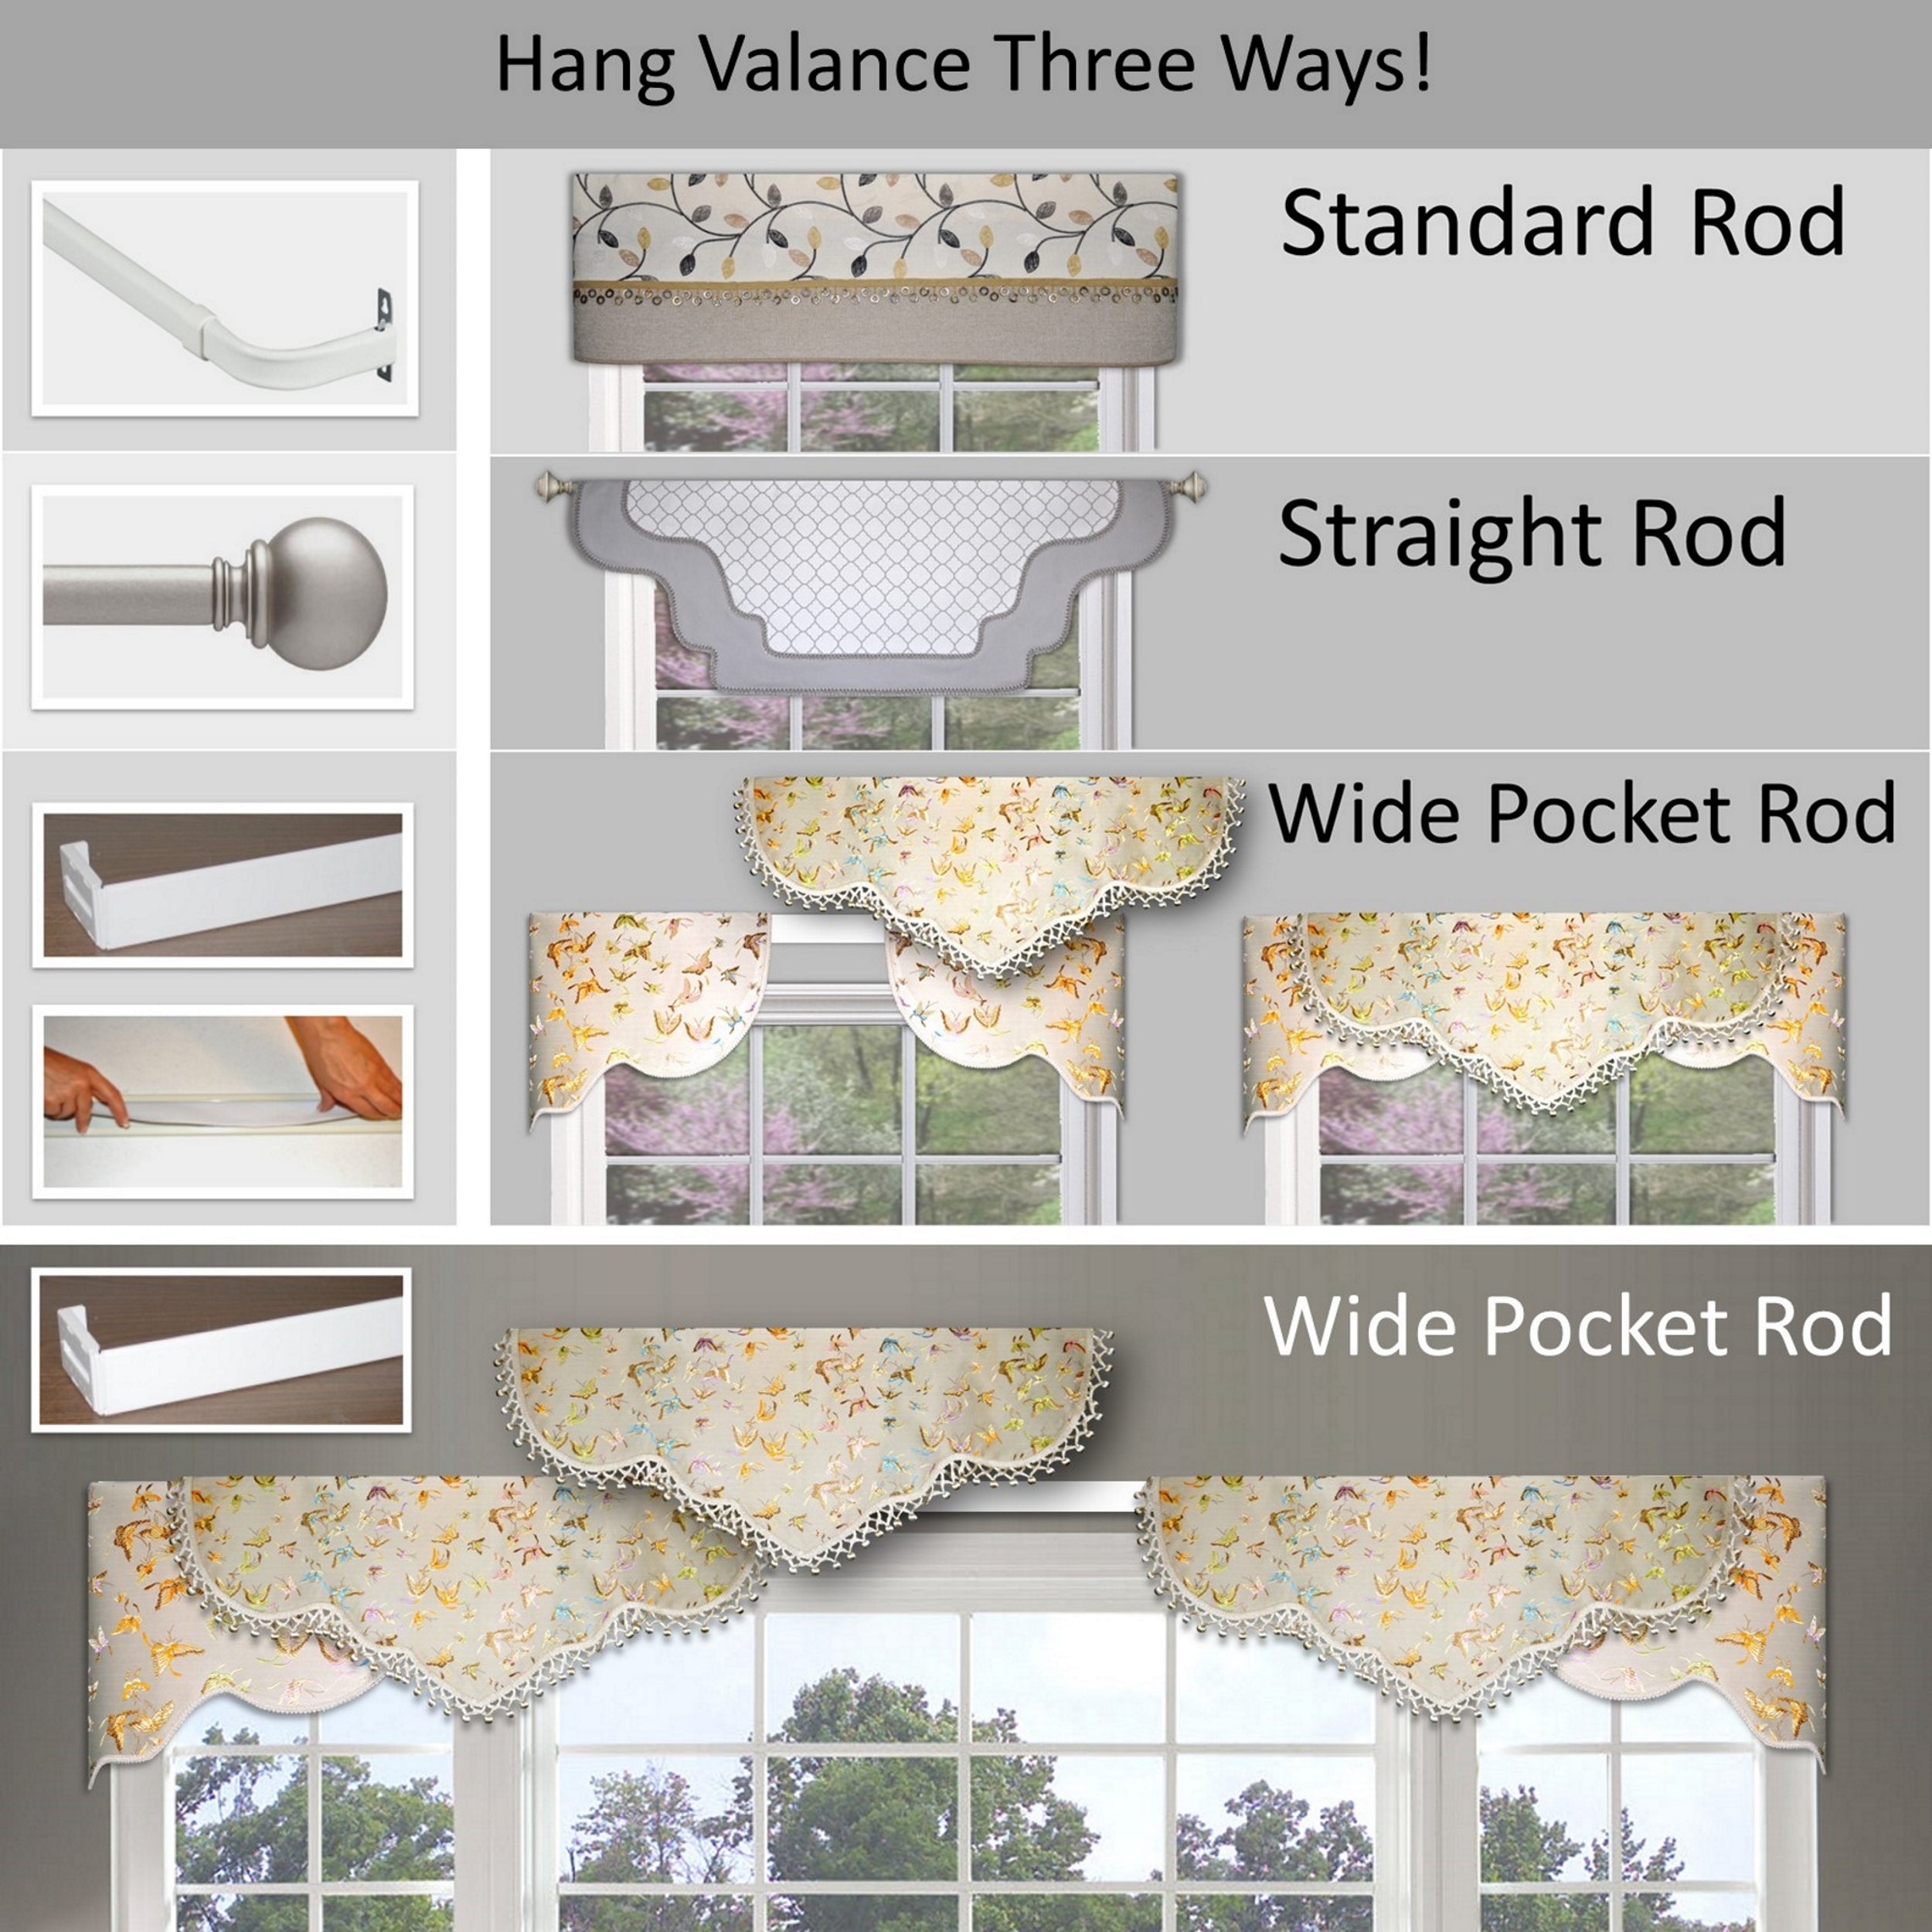 Traceable Designer DIY valance kit, Easy hanging options. No foam board needed!